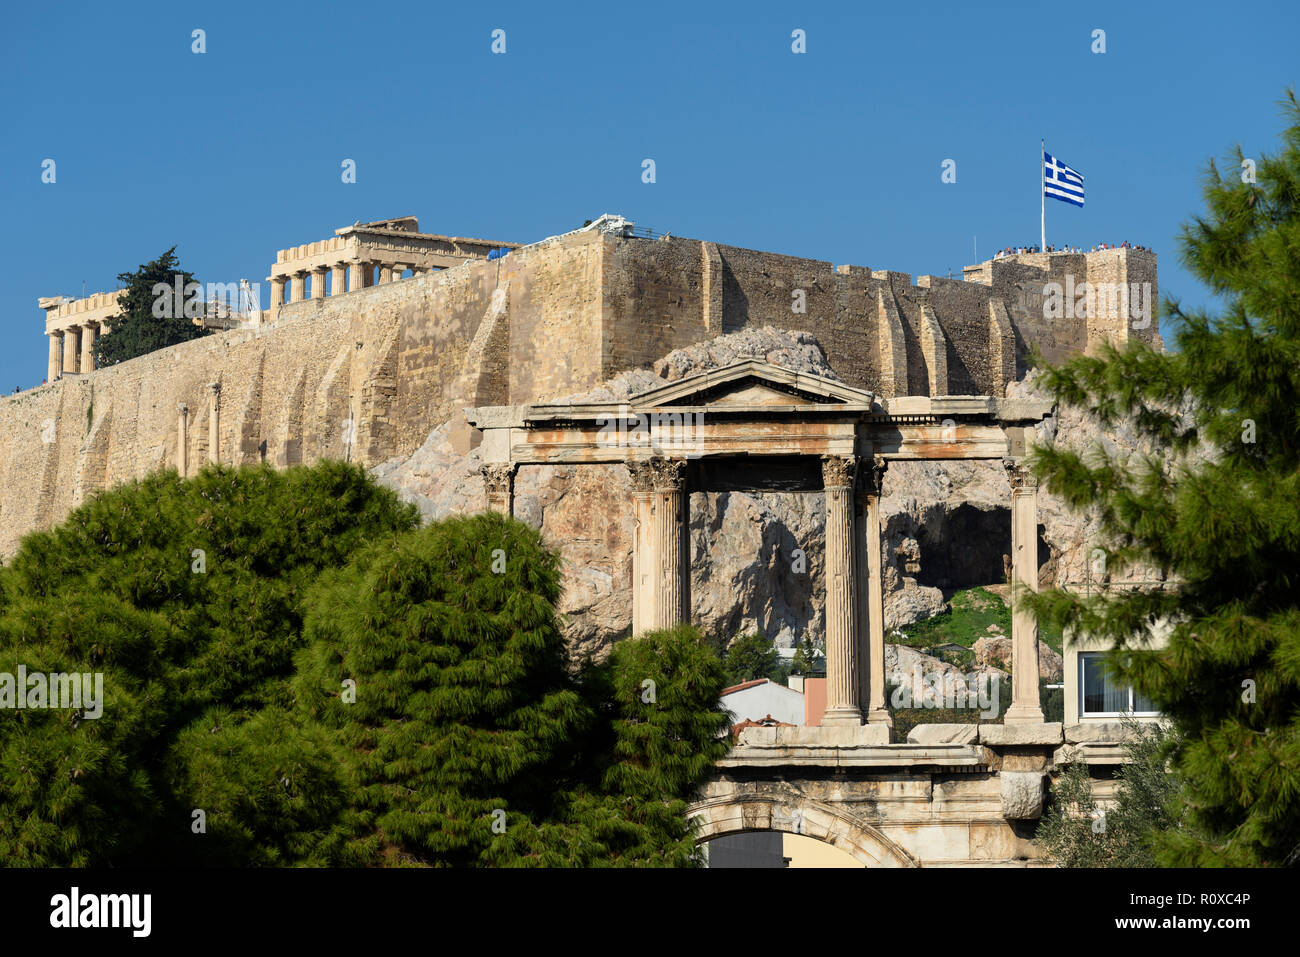 Athens. Greece. Roman Arch of Hadrian aka Hadrian's Gate, with the Parthenon and Acropolis in the background. (pediment of the upper level). - Stock Image